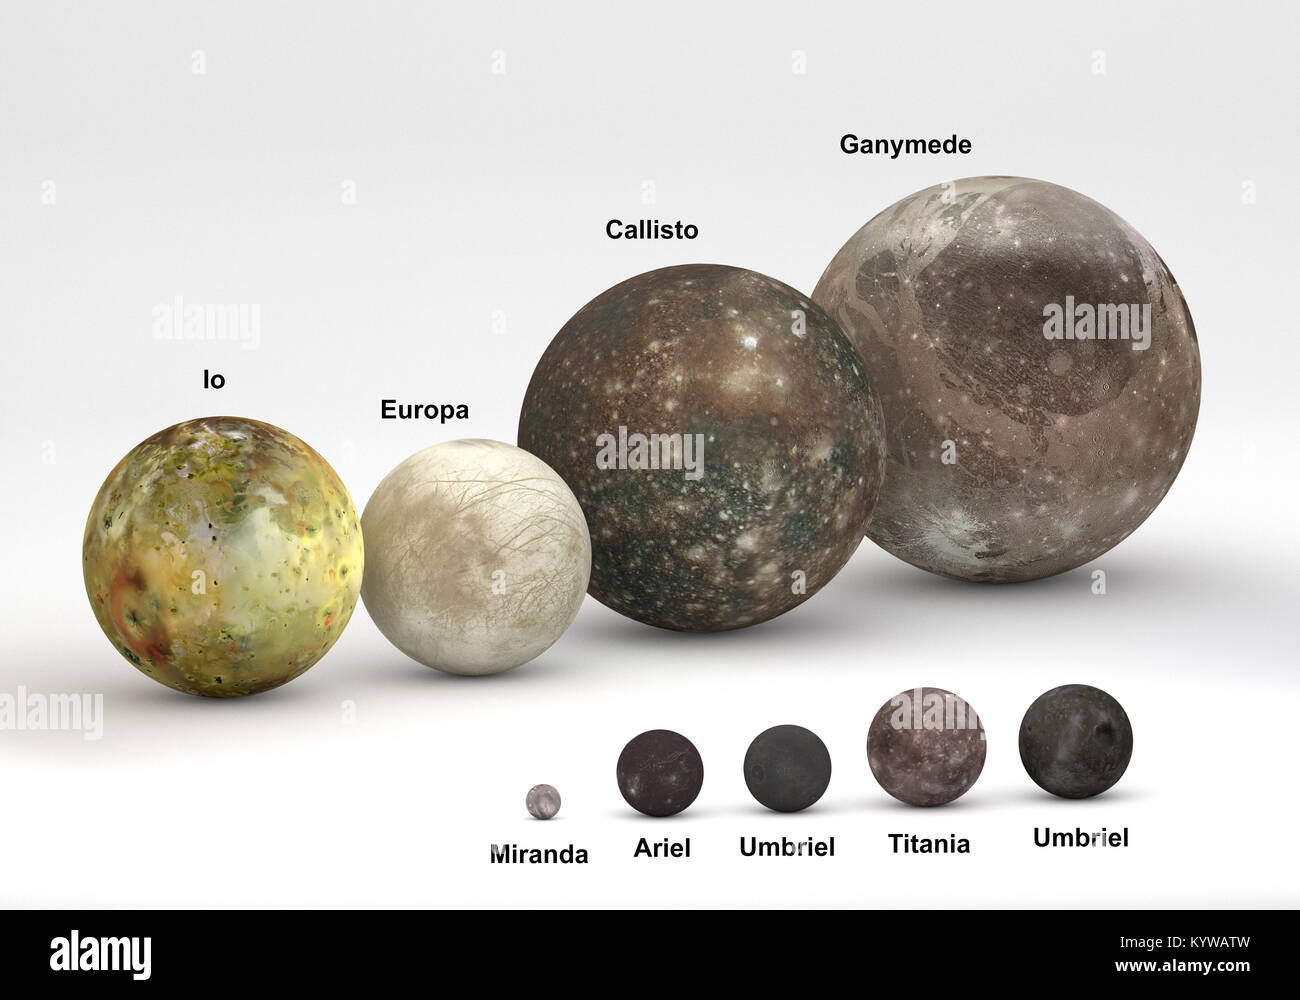 This image represents the size comparison between Jupiter and Uranus moons in a precise and scientific design.This - Stock Image